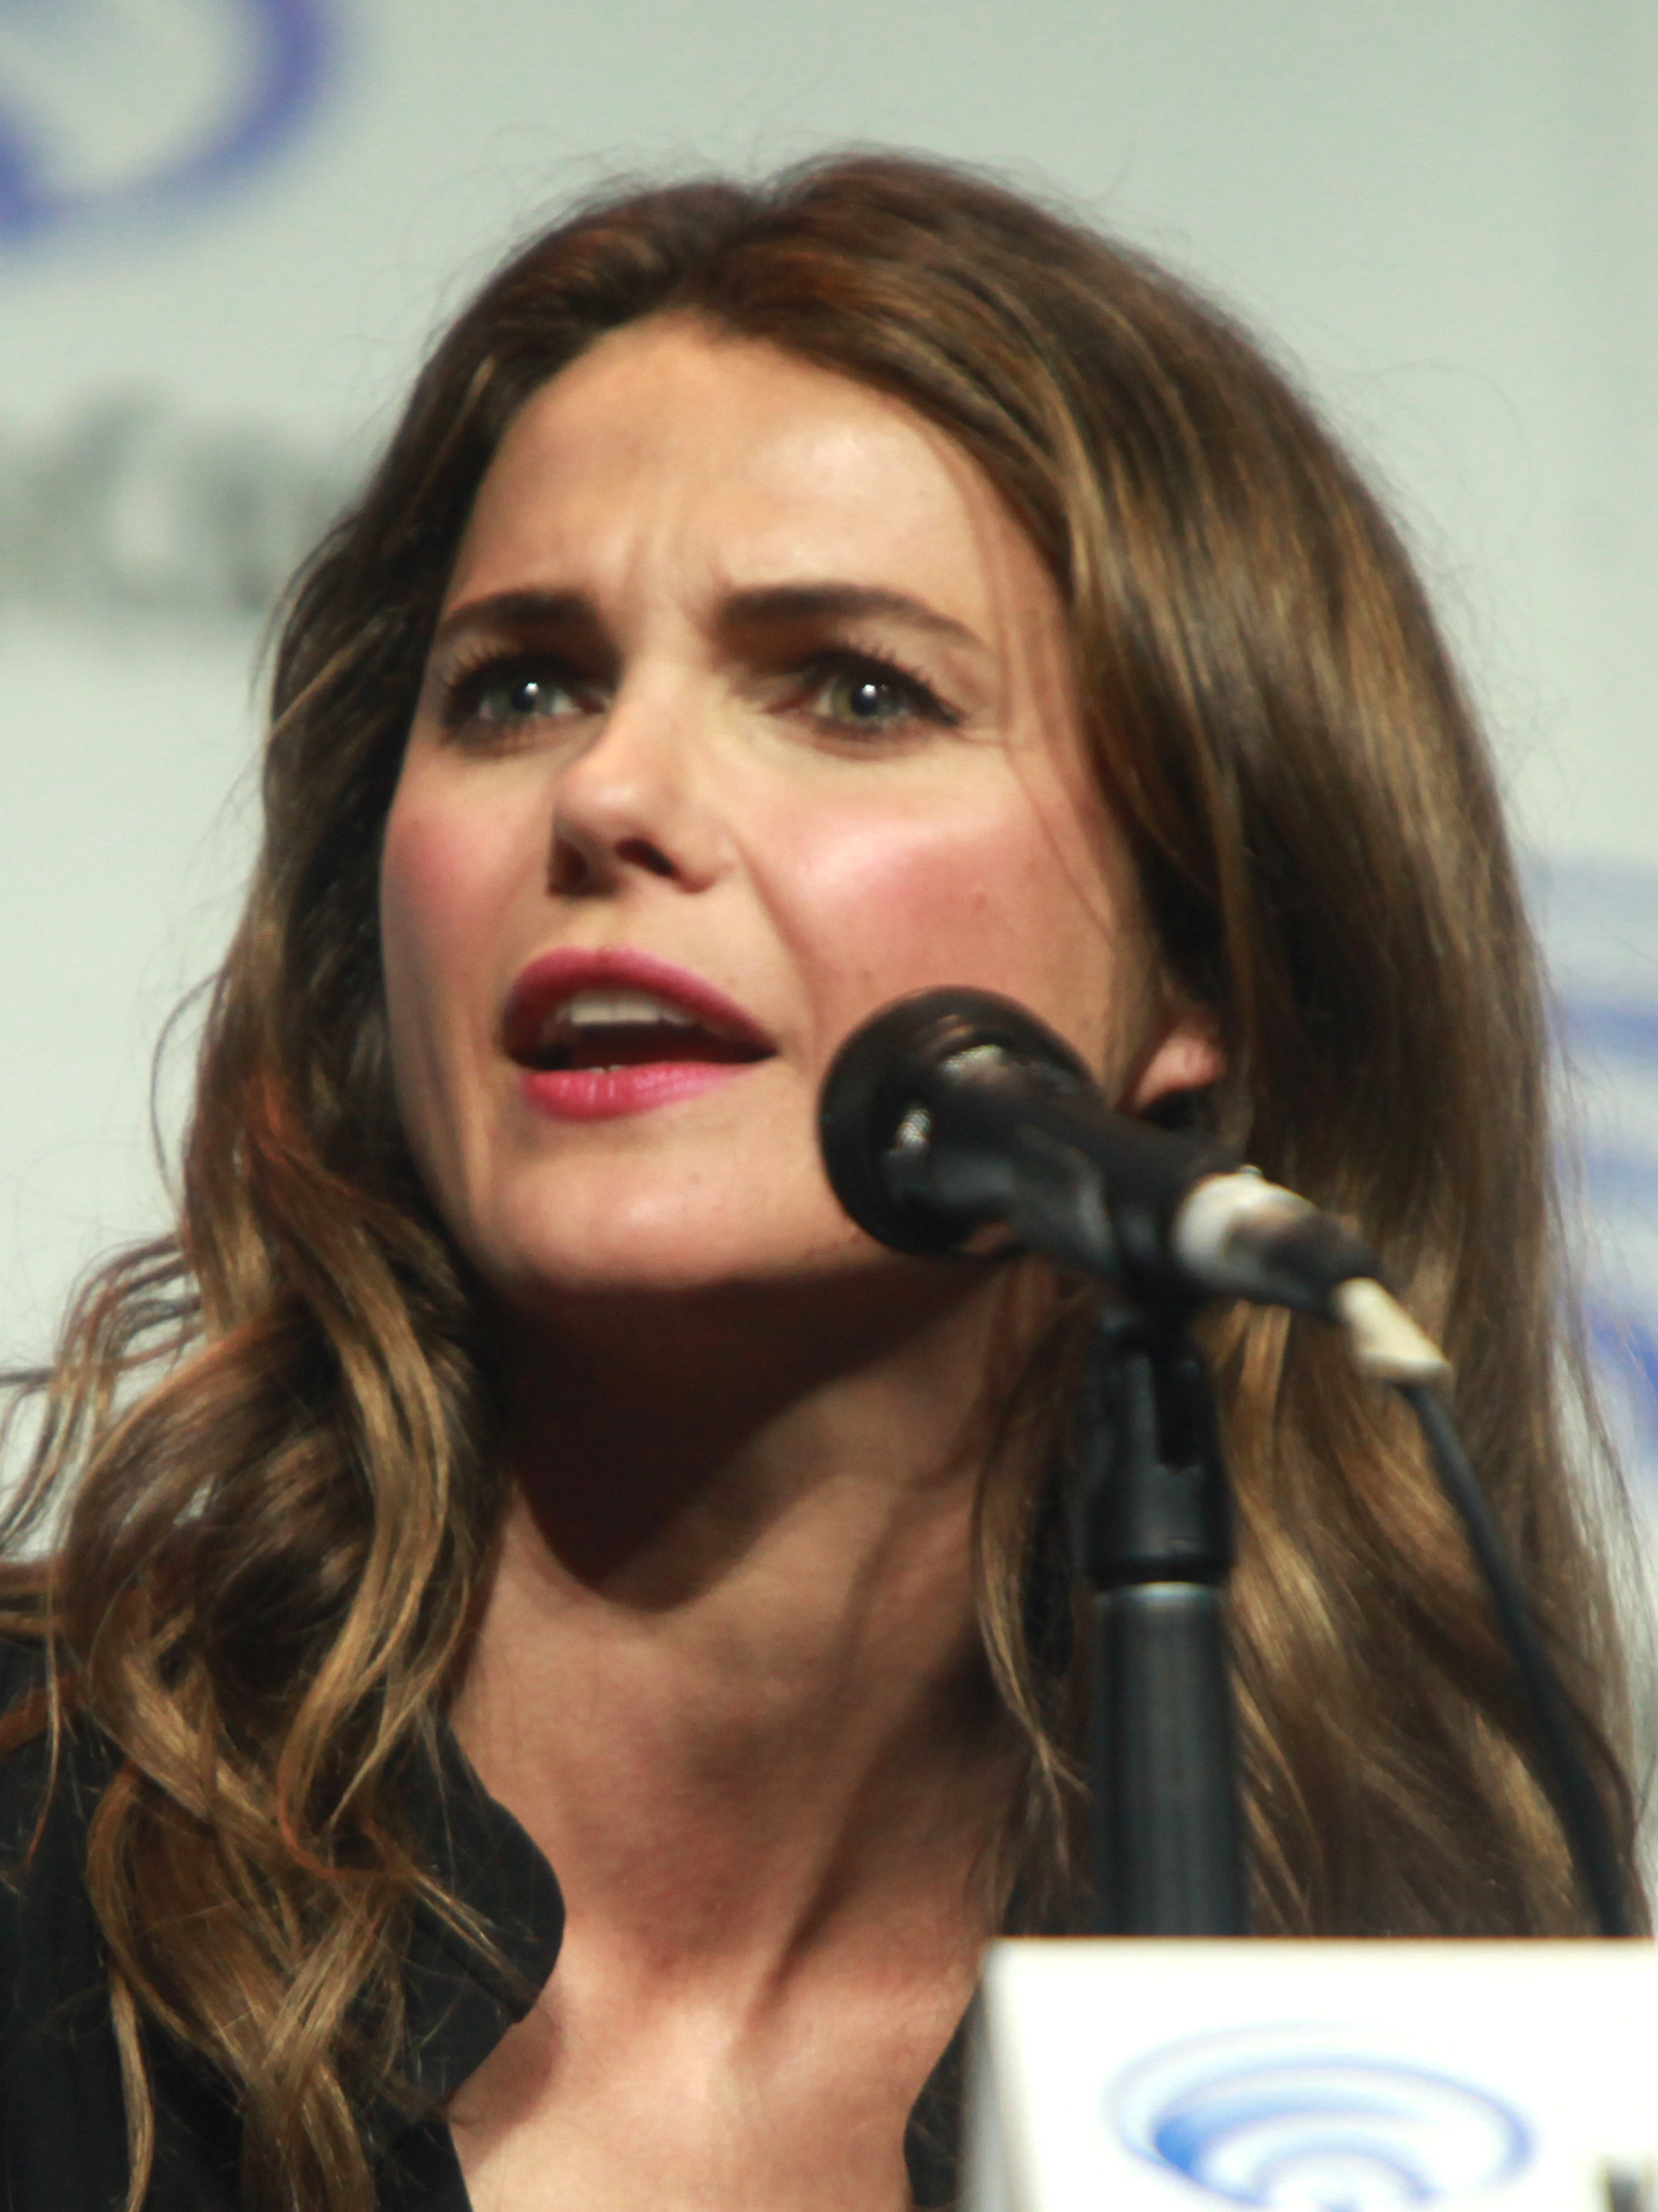 Angie Dickinson Xvideos keri russell - wikipedia